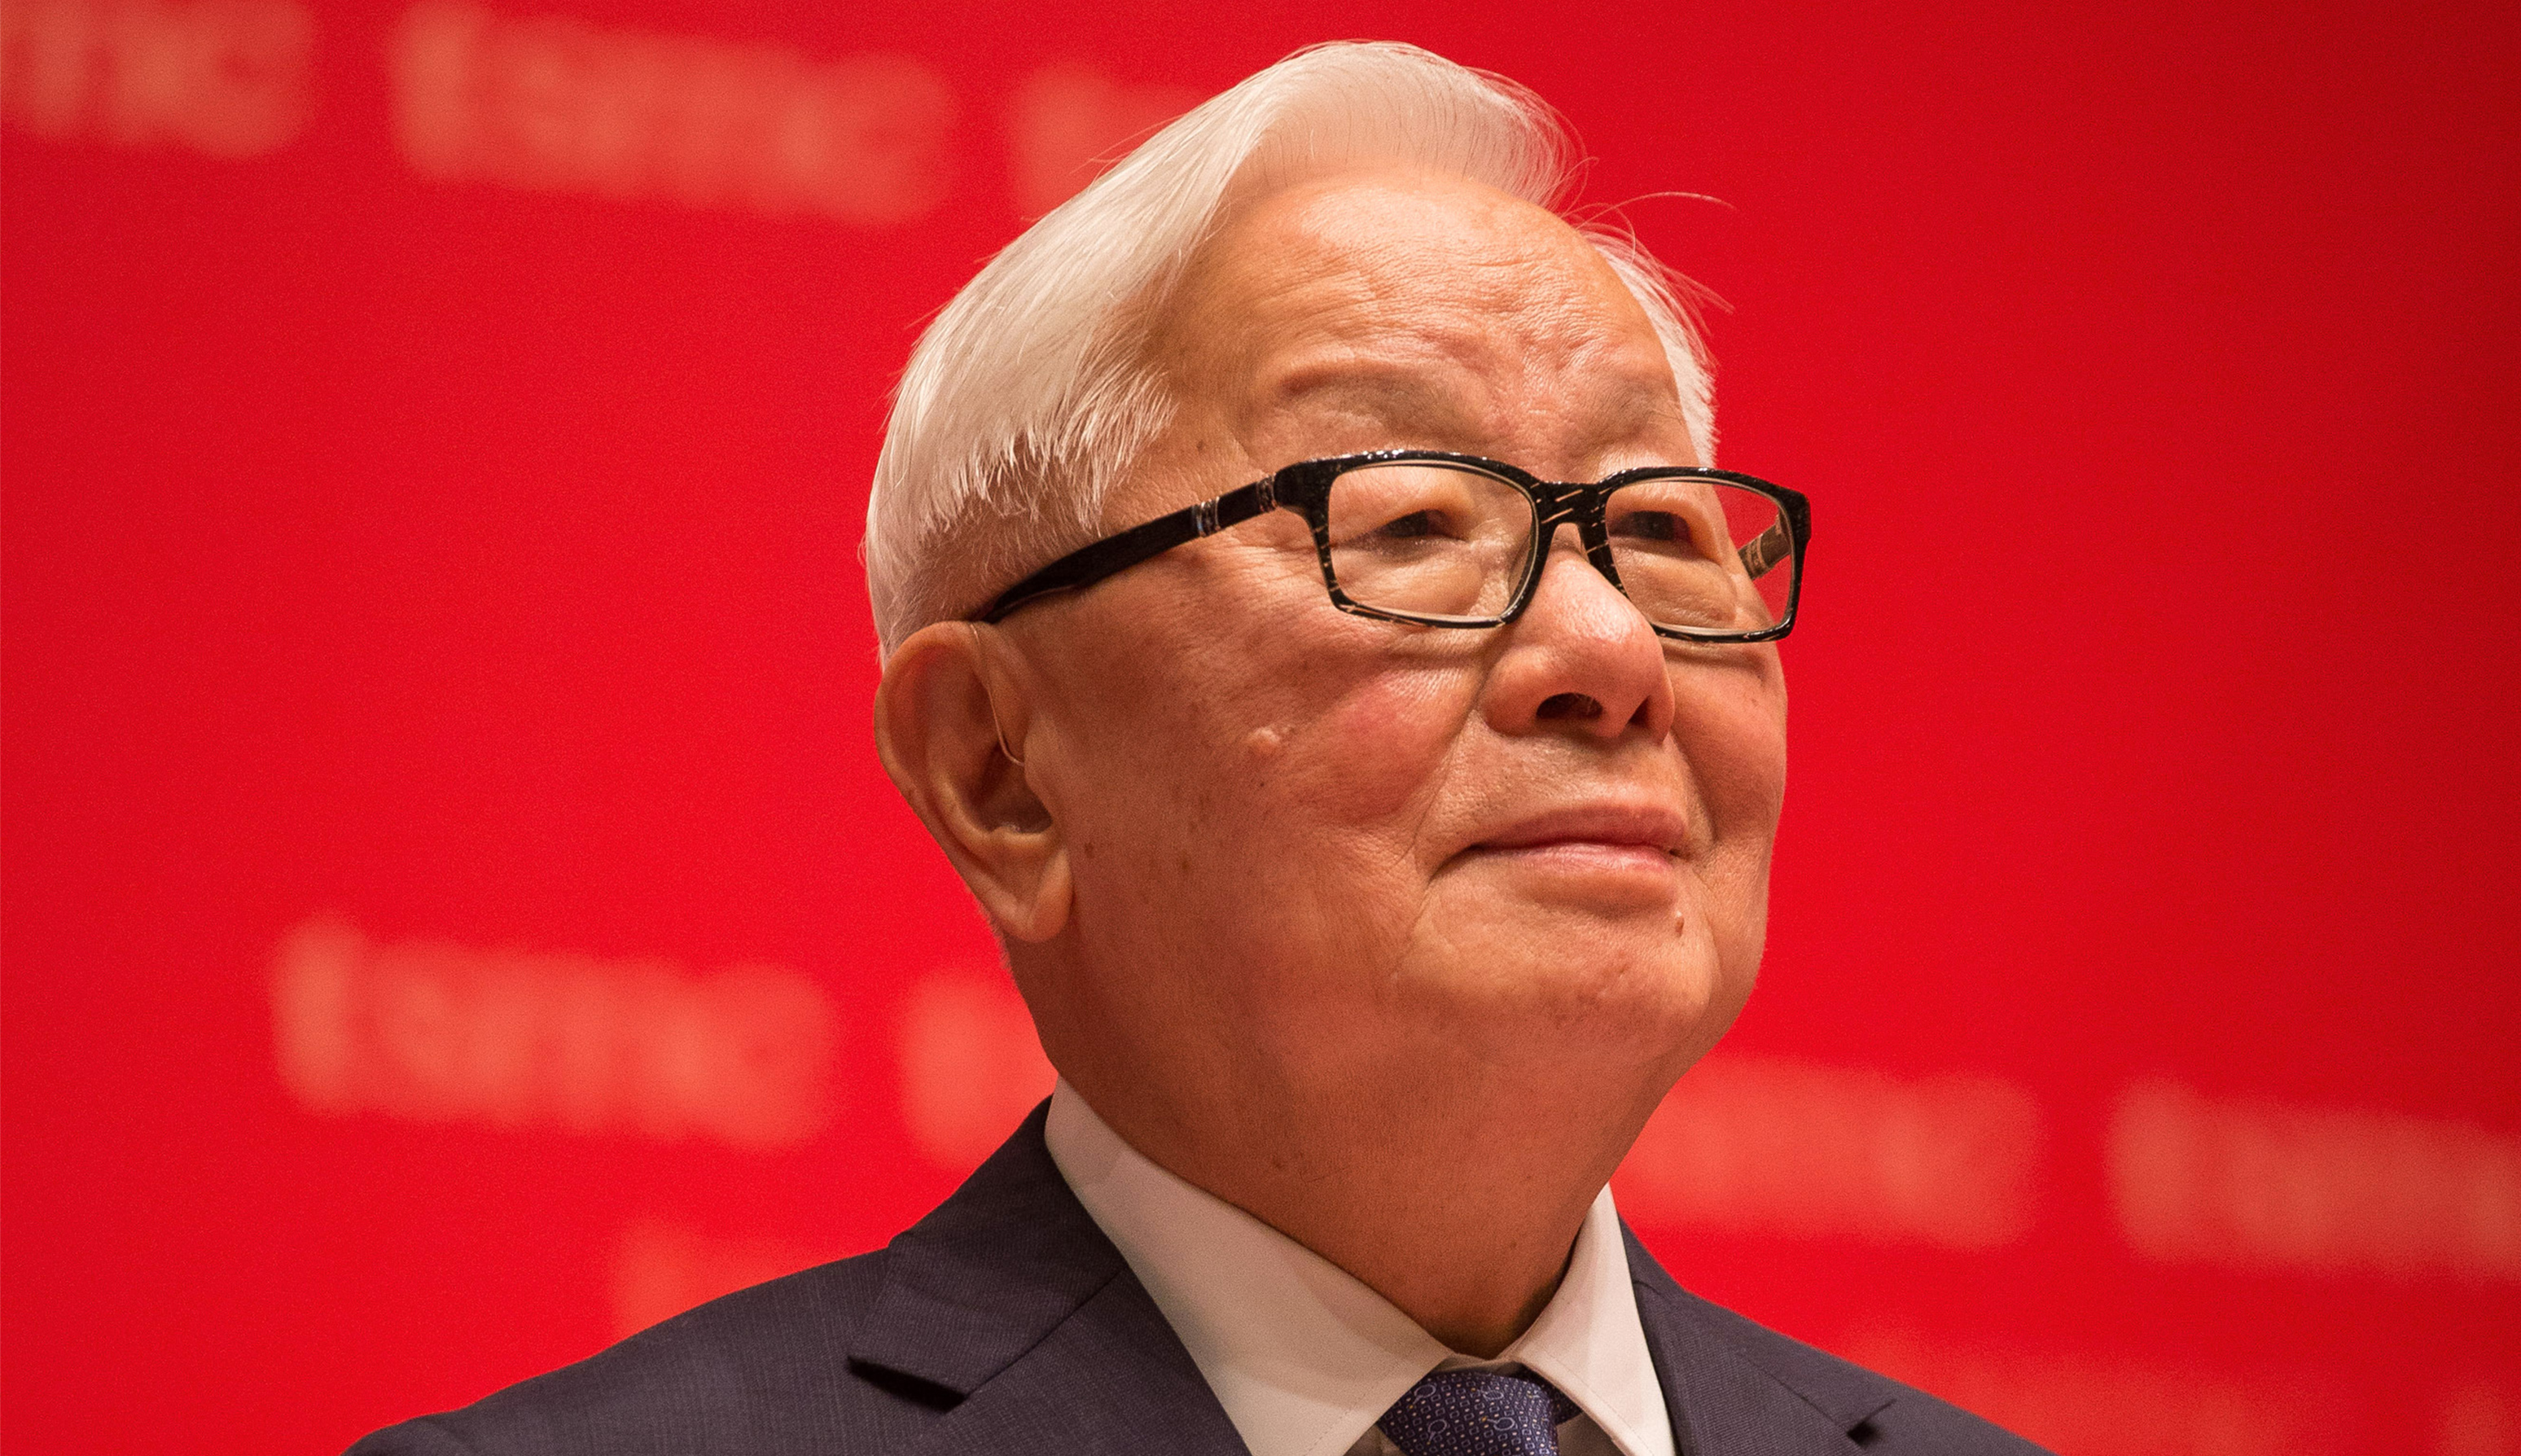 Morris Chang, chairman and founder of Taiwan Semiconductor Manufacturing Company Ltd. (TSMC), attends the company's annual general meeting in Hsinchu, Taiwan, on Tuesday, June 9, 2015. Chang expects sales to rise at least 10 percent this year. Photographer: Billy H.C. Kwok/Getty Images